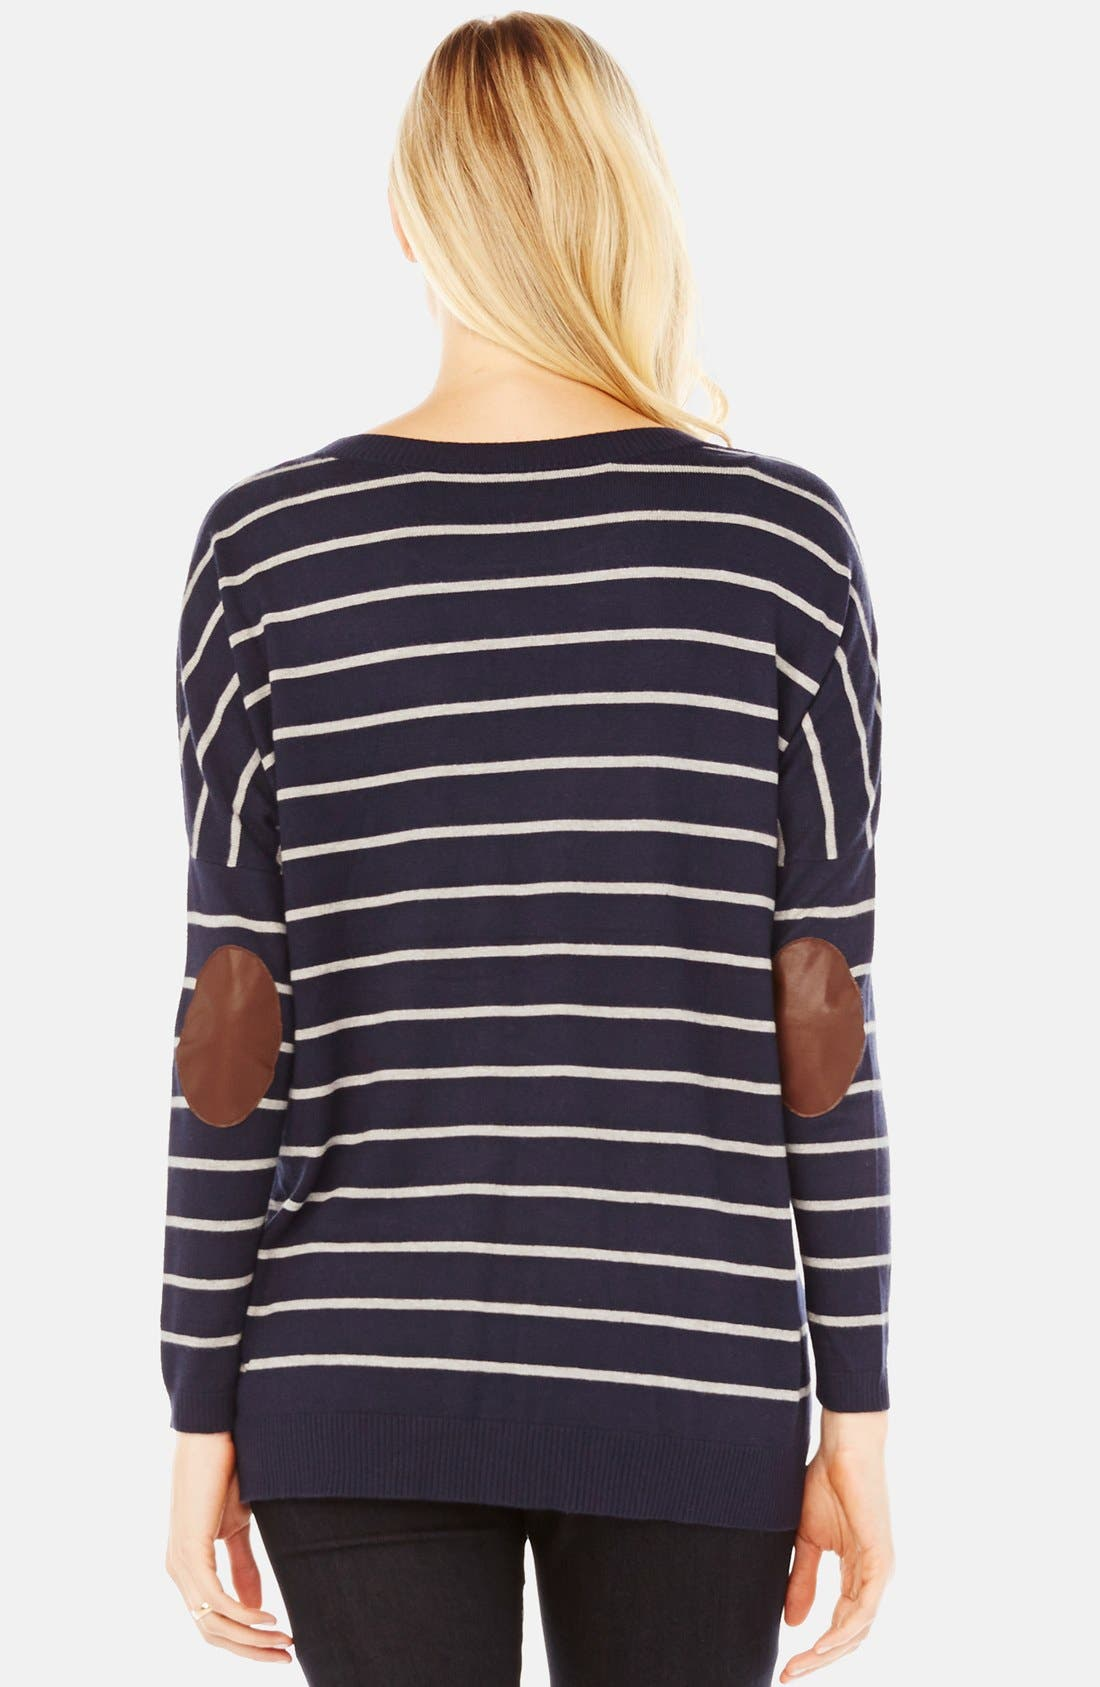 'Whitney' Maternity Sweater,                             Alternate thumbnail 2, color,                             Navy/ Grey Stripe